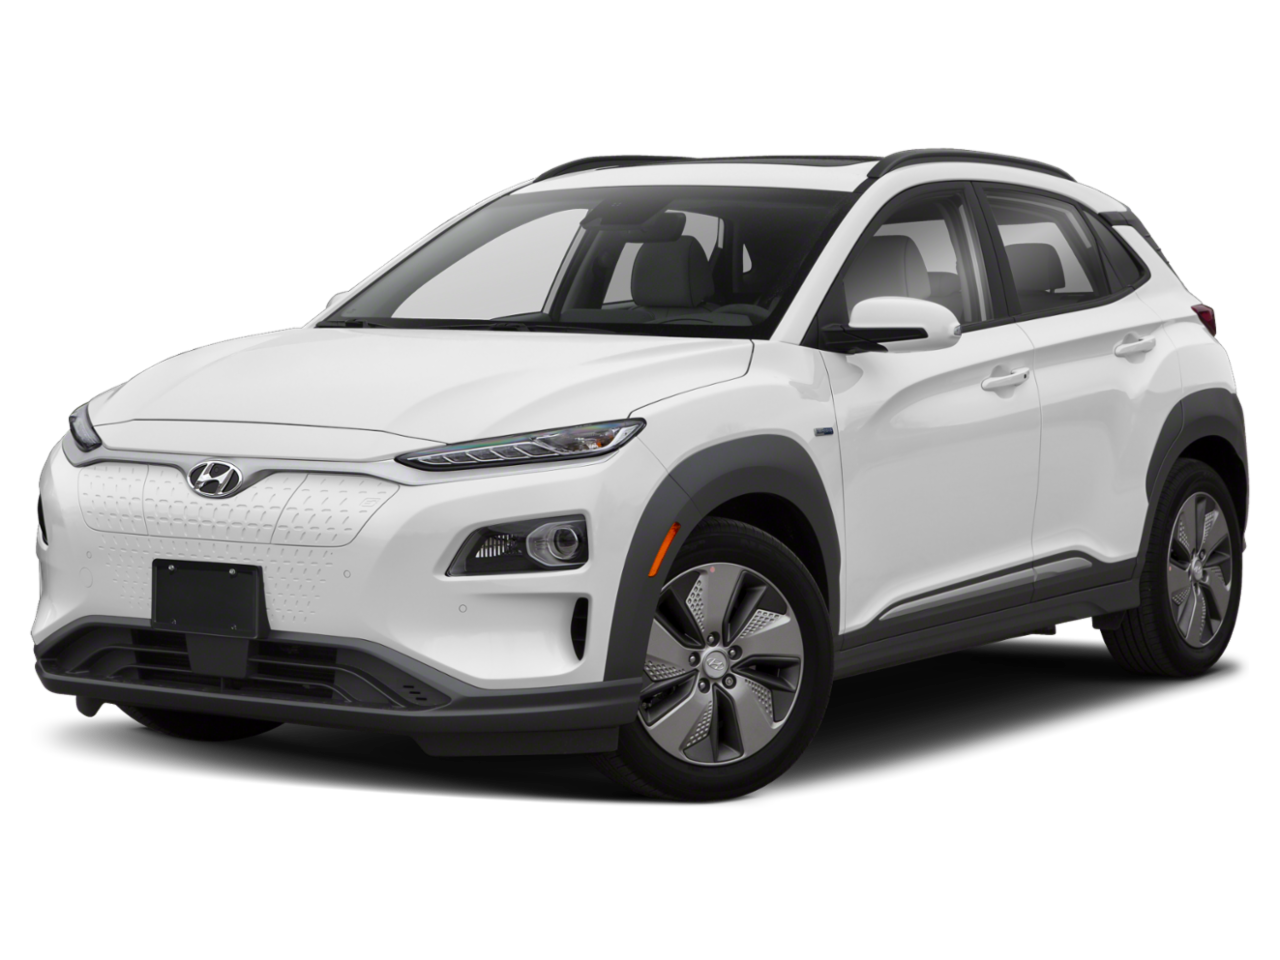 Buyer's Guide: 2020 Hyundai Kona Electric